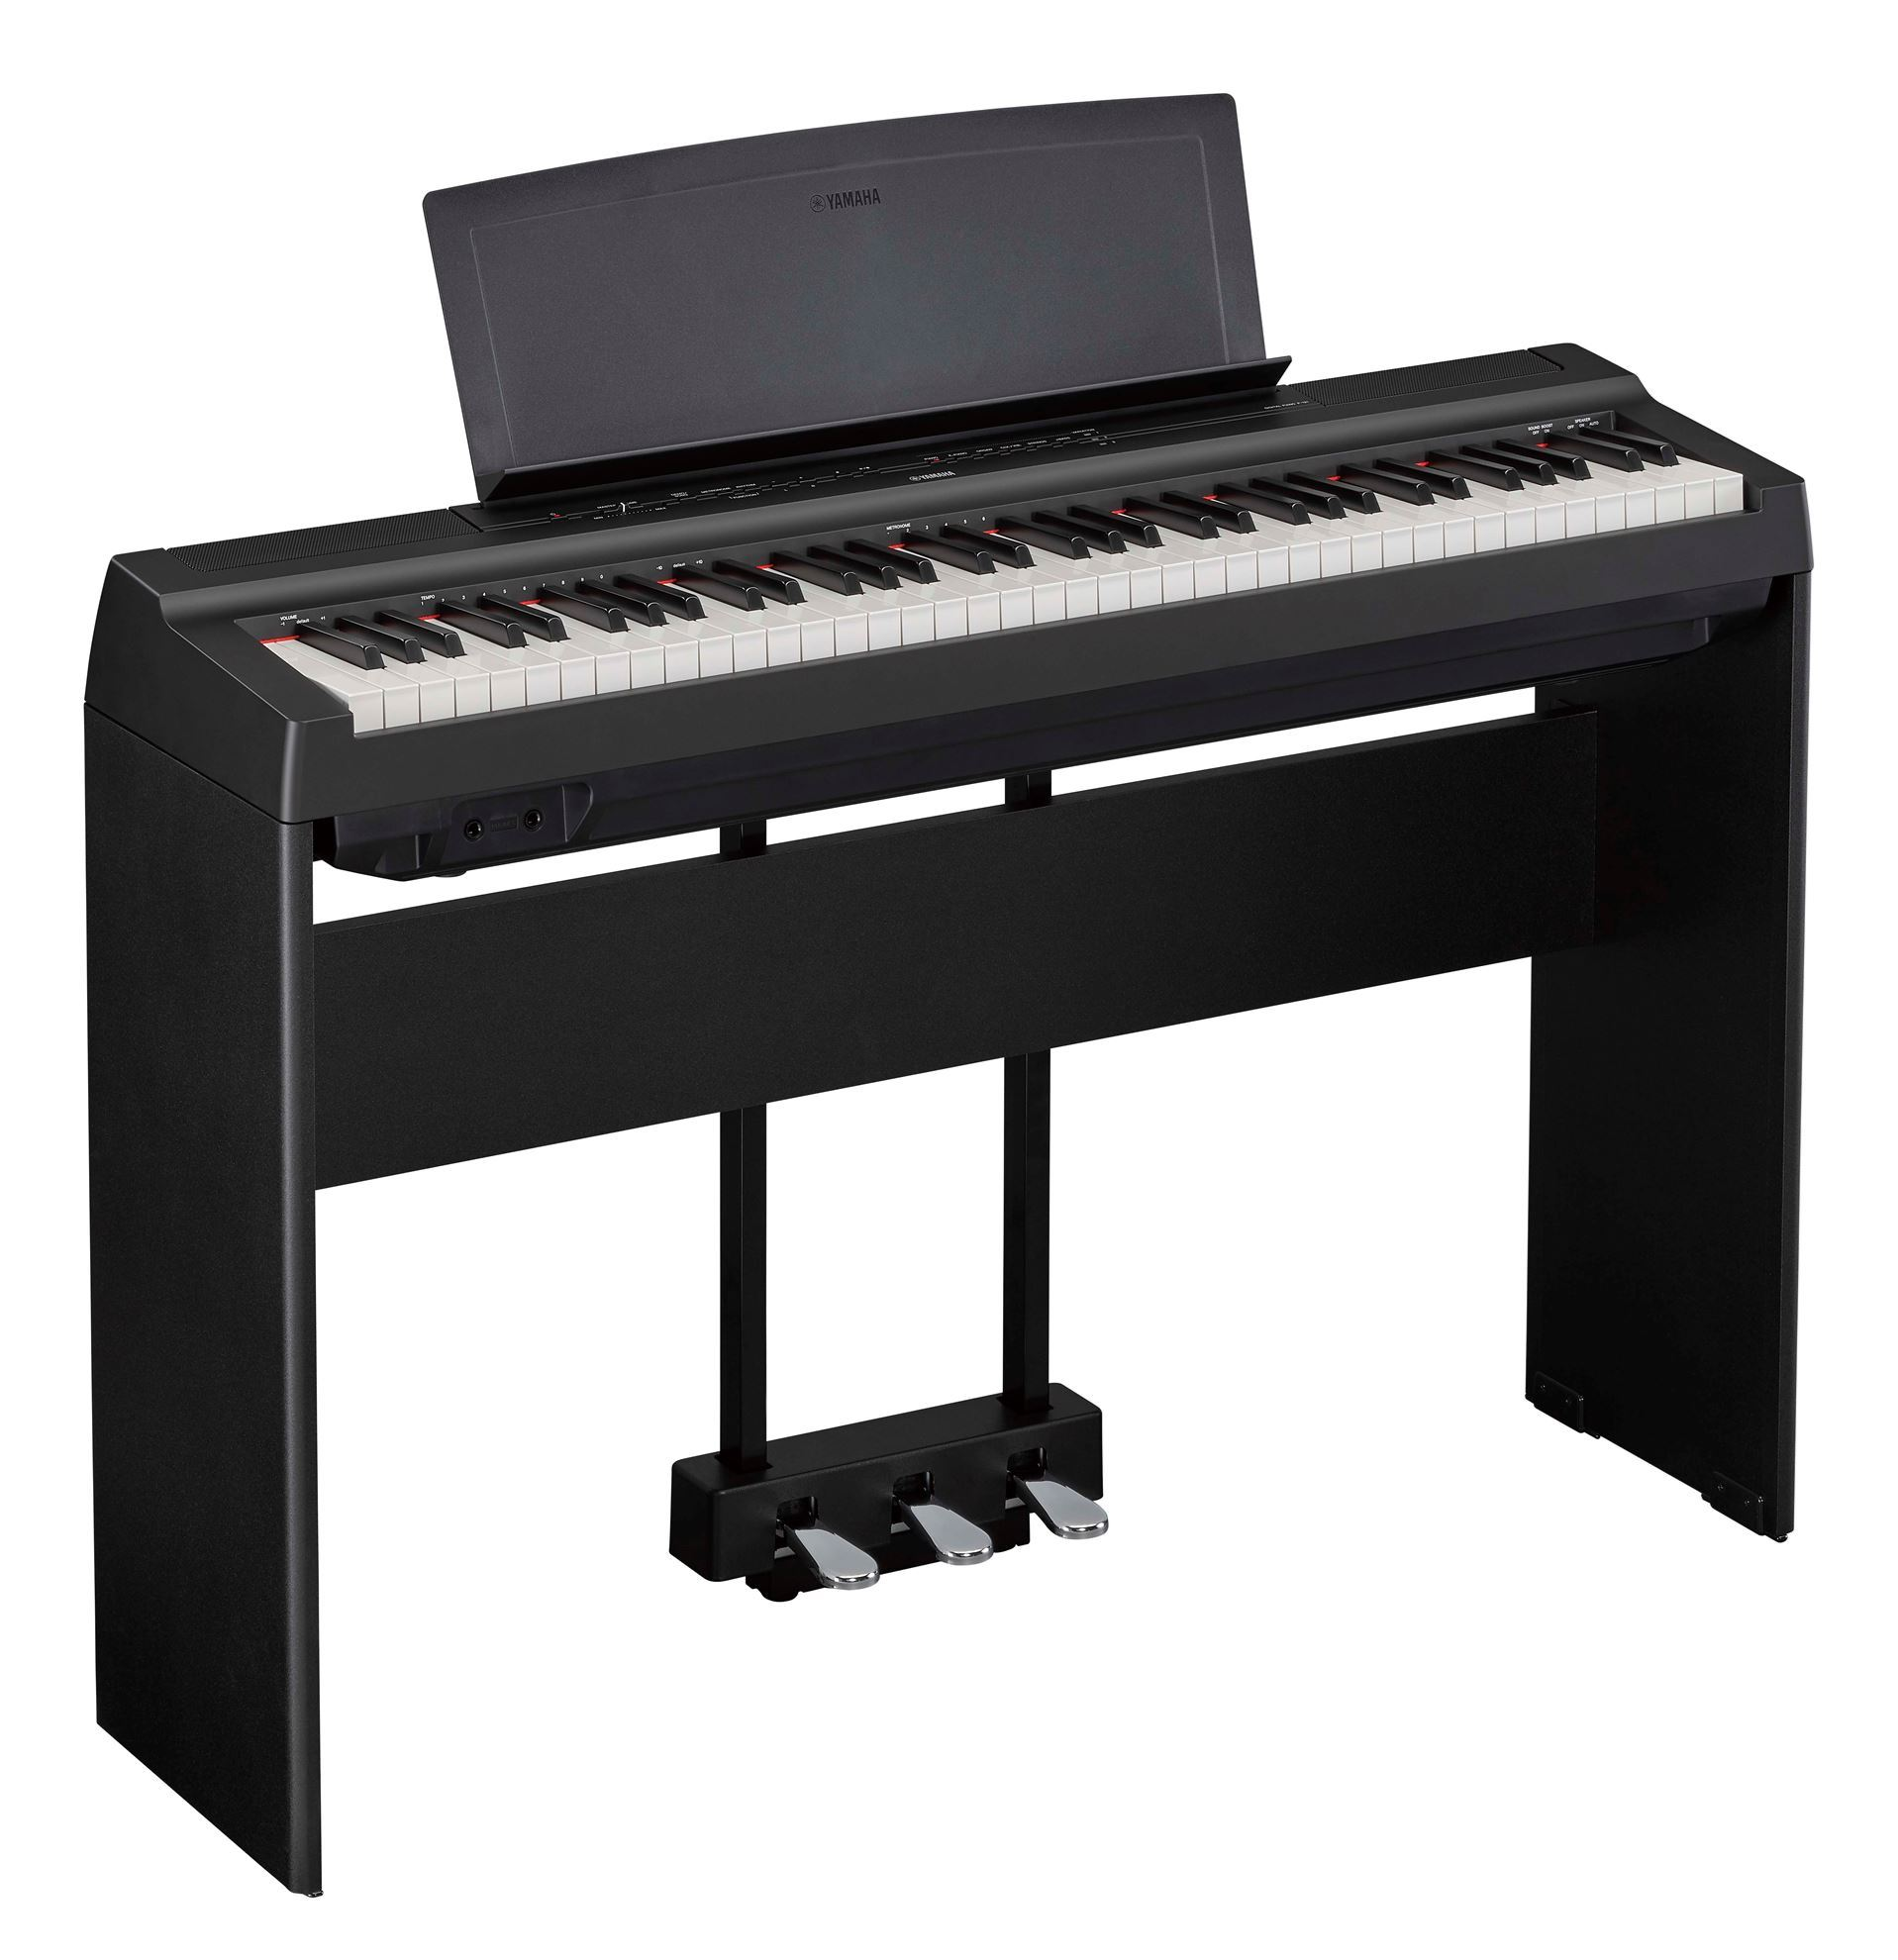 0015305_yamaha-p-121-portable-digital-piano-with-stand-and-pedal-unit-black-p121b.jpg